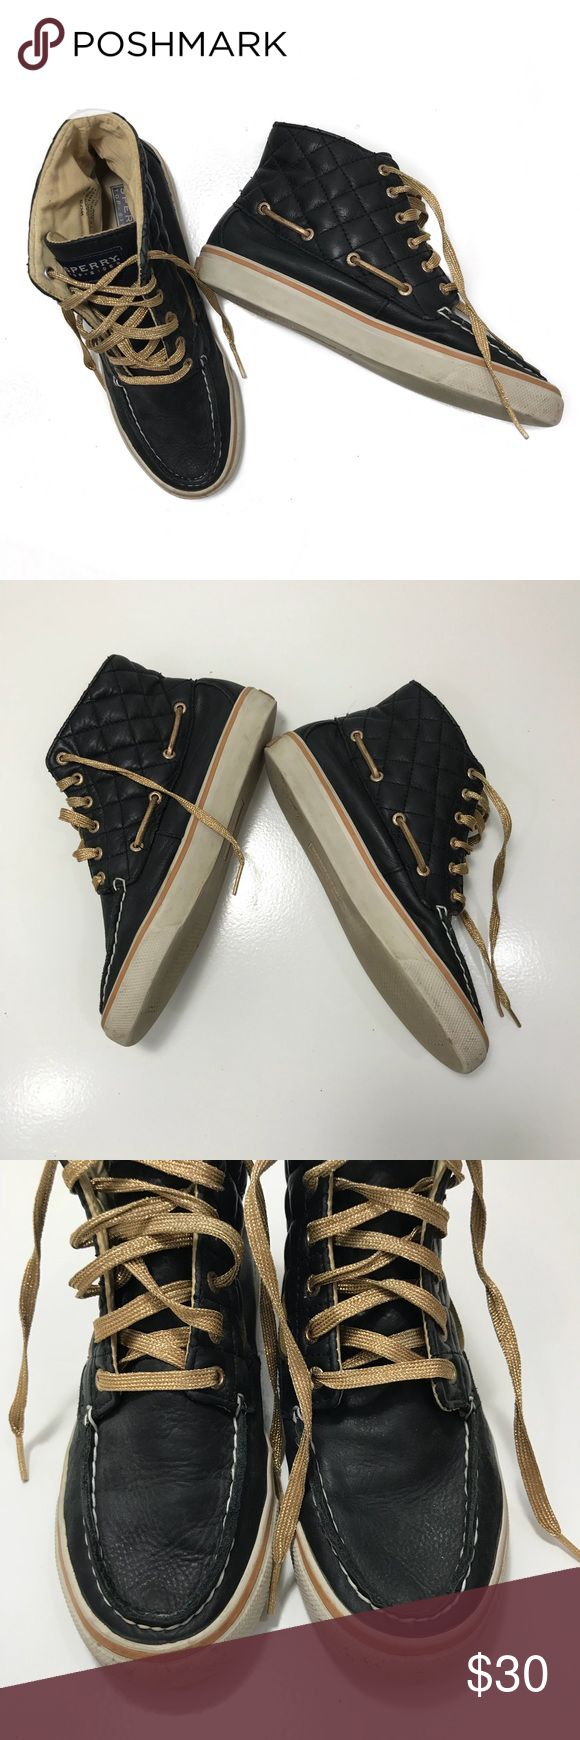 Sperry High Tops • Navy classic lace up high tops. These show normal signs of wear as shown in the photos. Sperry Top-Sider Shoes Sneakers